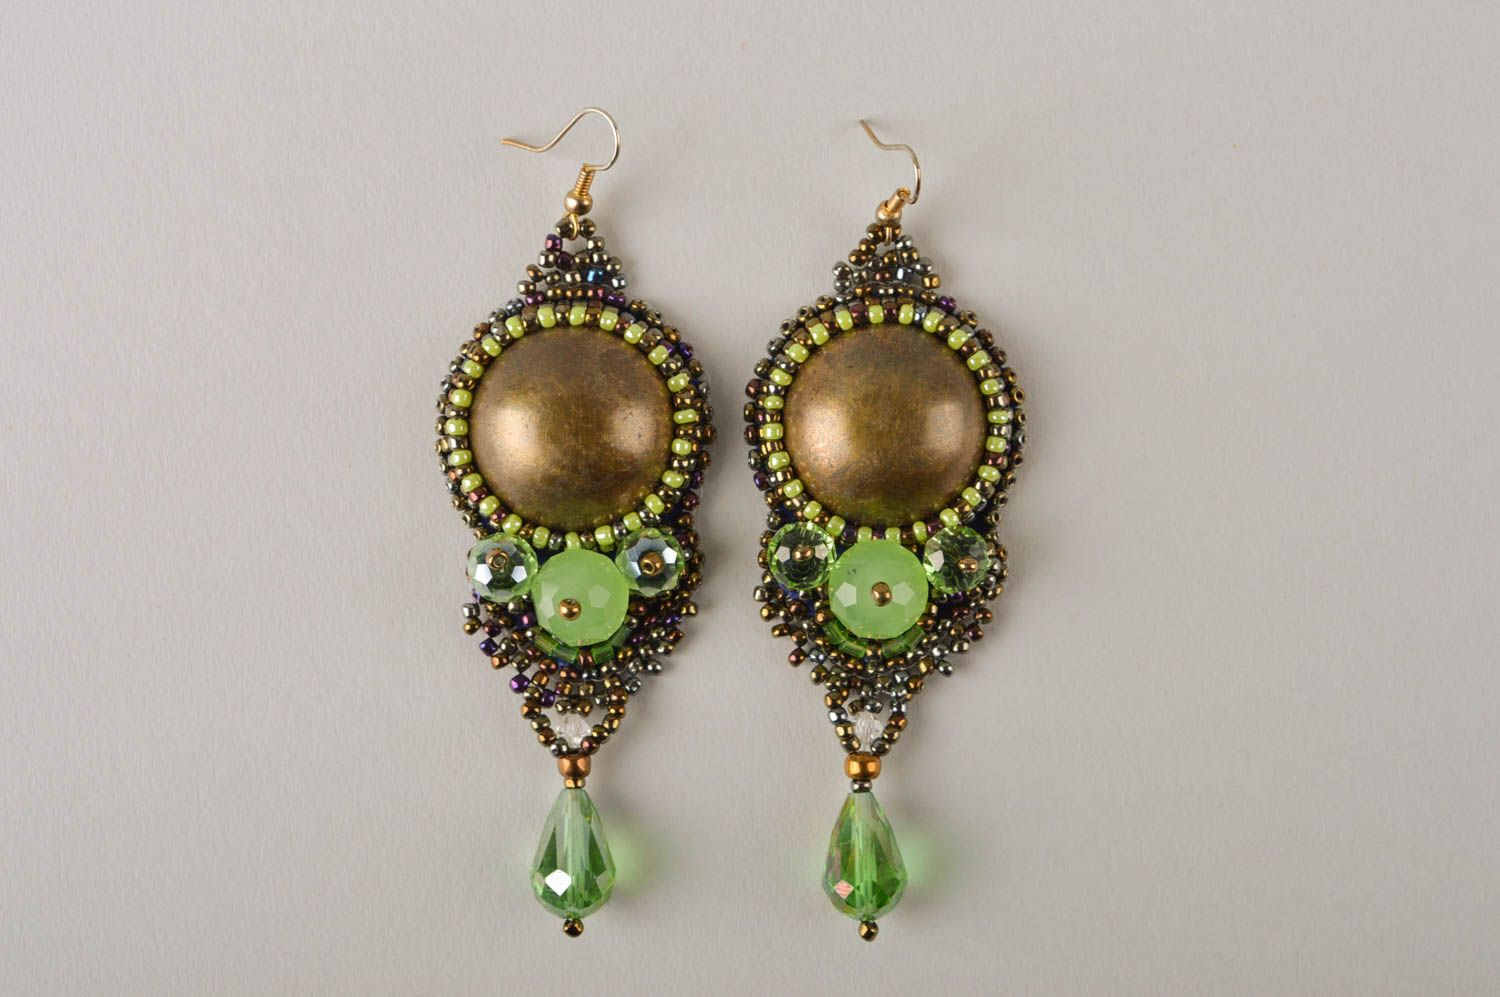 Unusual handmade beaded earrings costume jewelry designs fashion trends photo 2